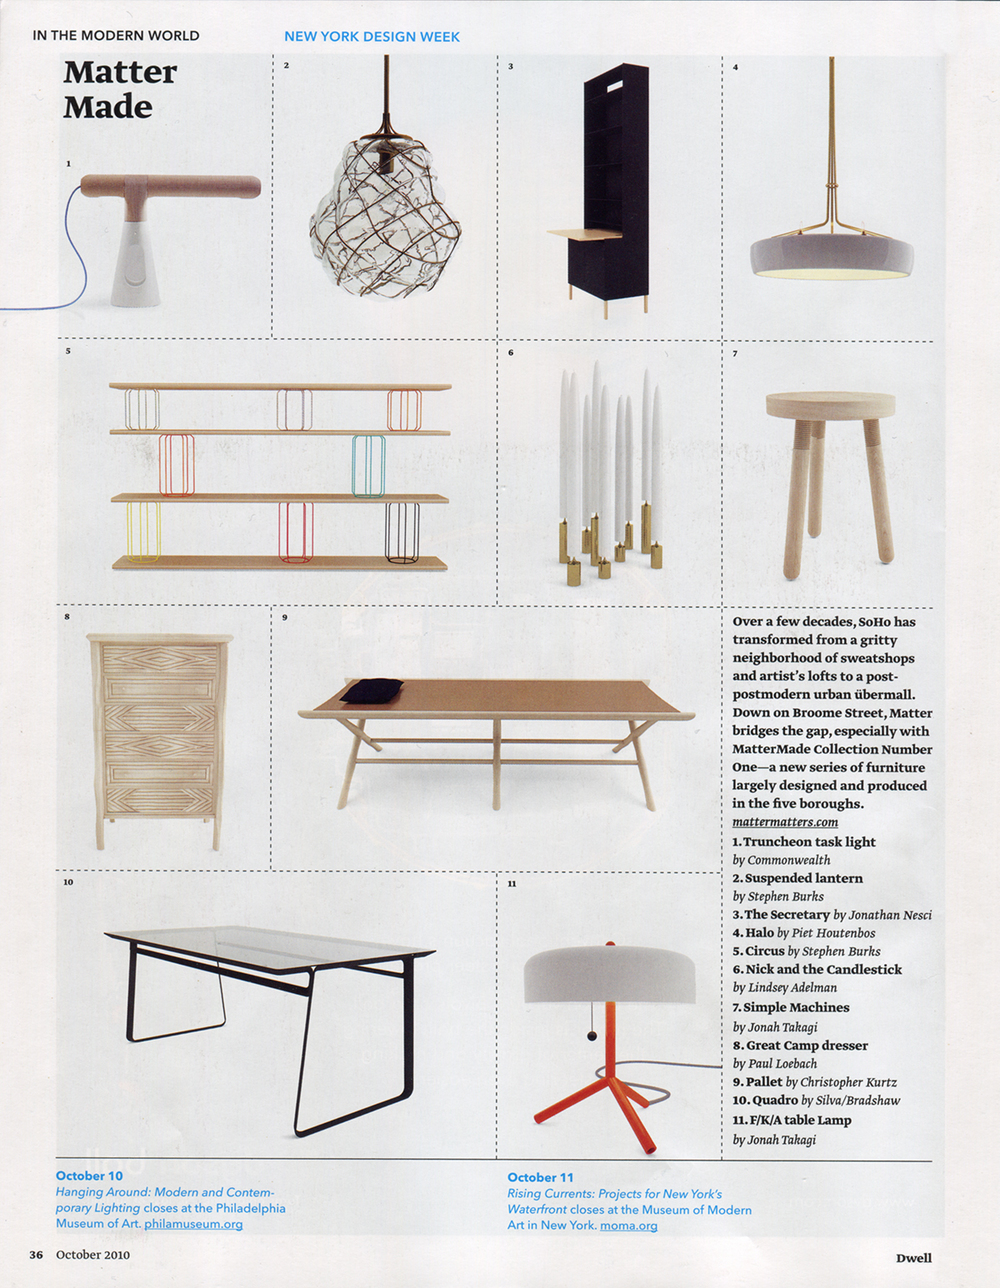 Dwell Magazine features the Halo Chandelier at its launch.